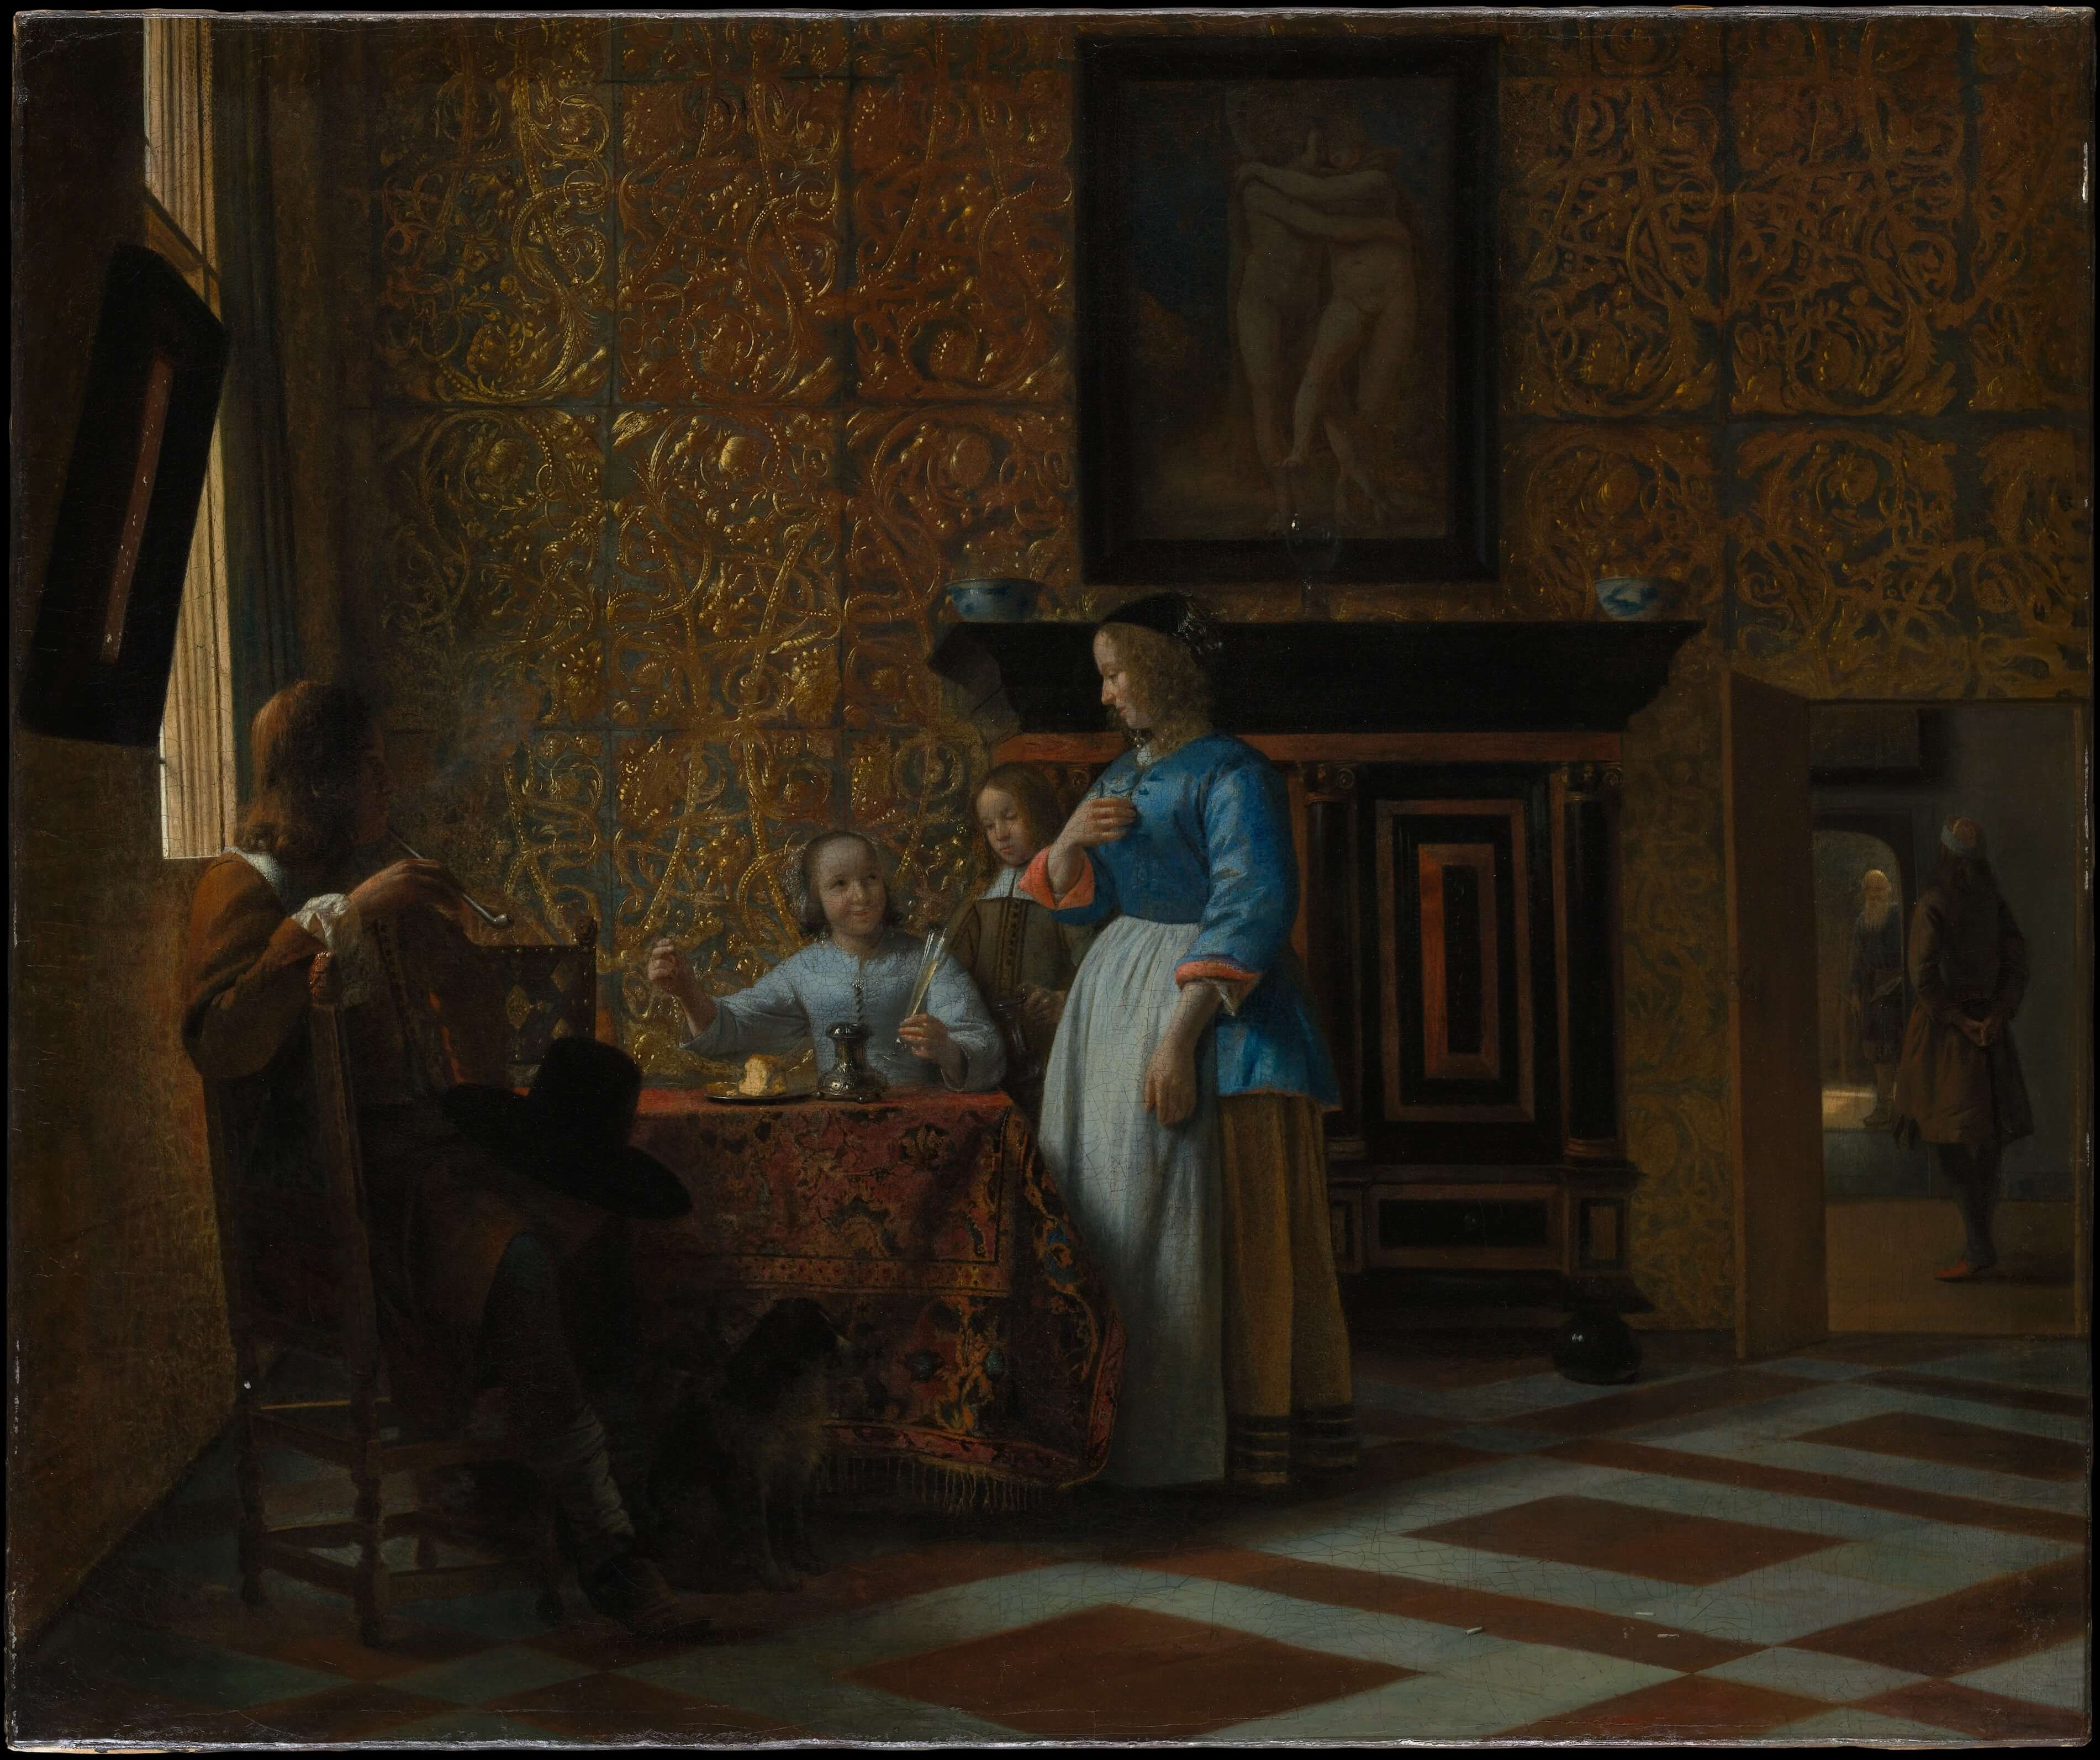 Leisure Time in an Elegant Setting by Pieter de Hooch Dutch Golden Age